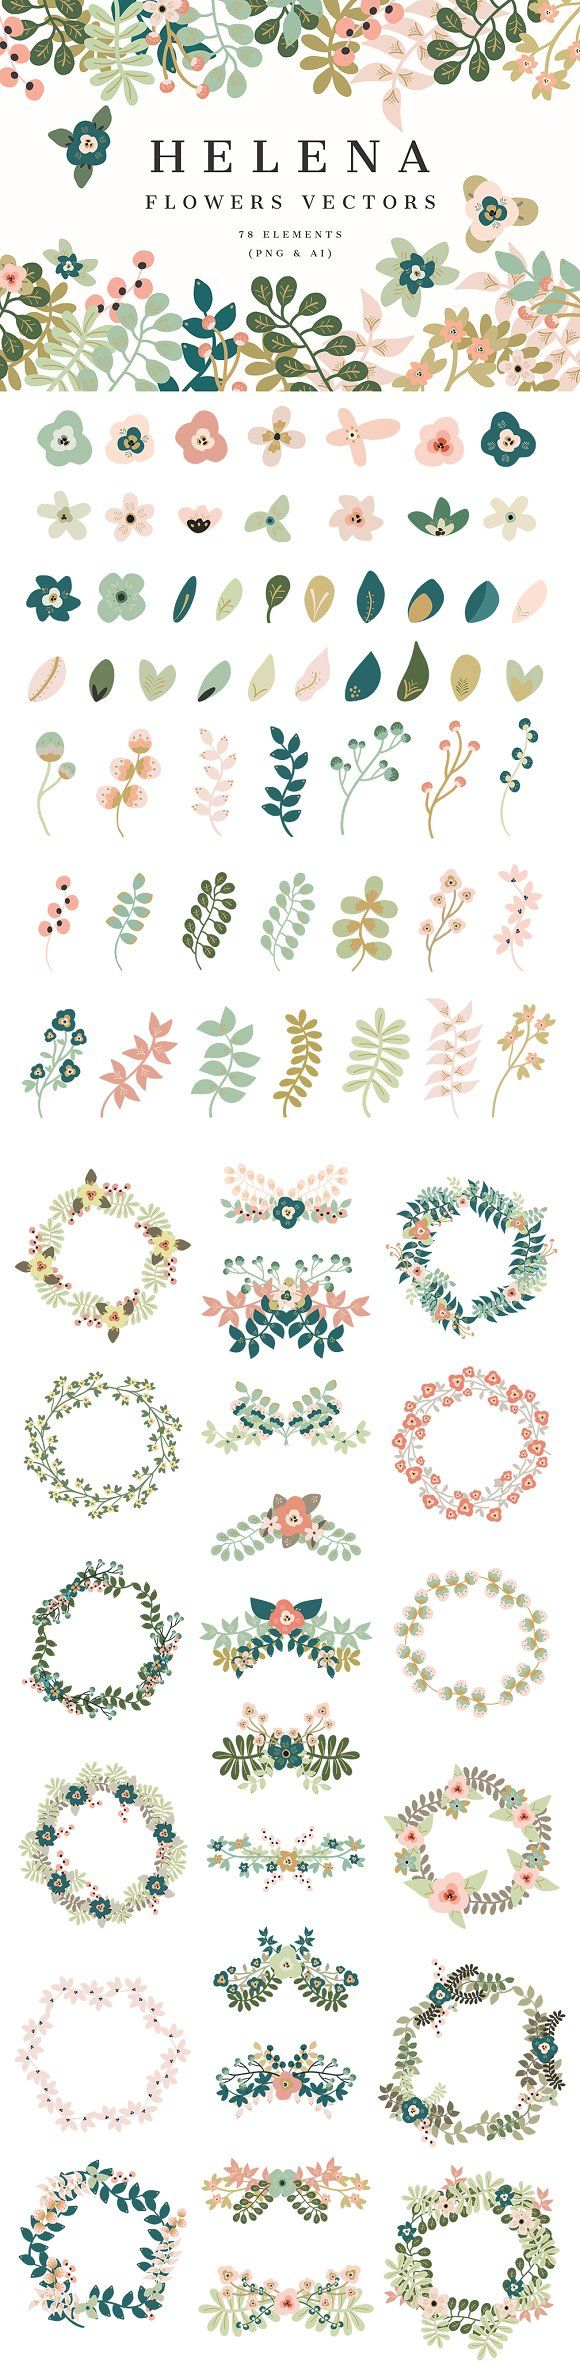 Helena -Flowers Vectors by Cliche Graphique on Creative Market